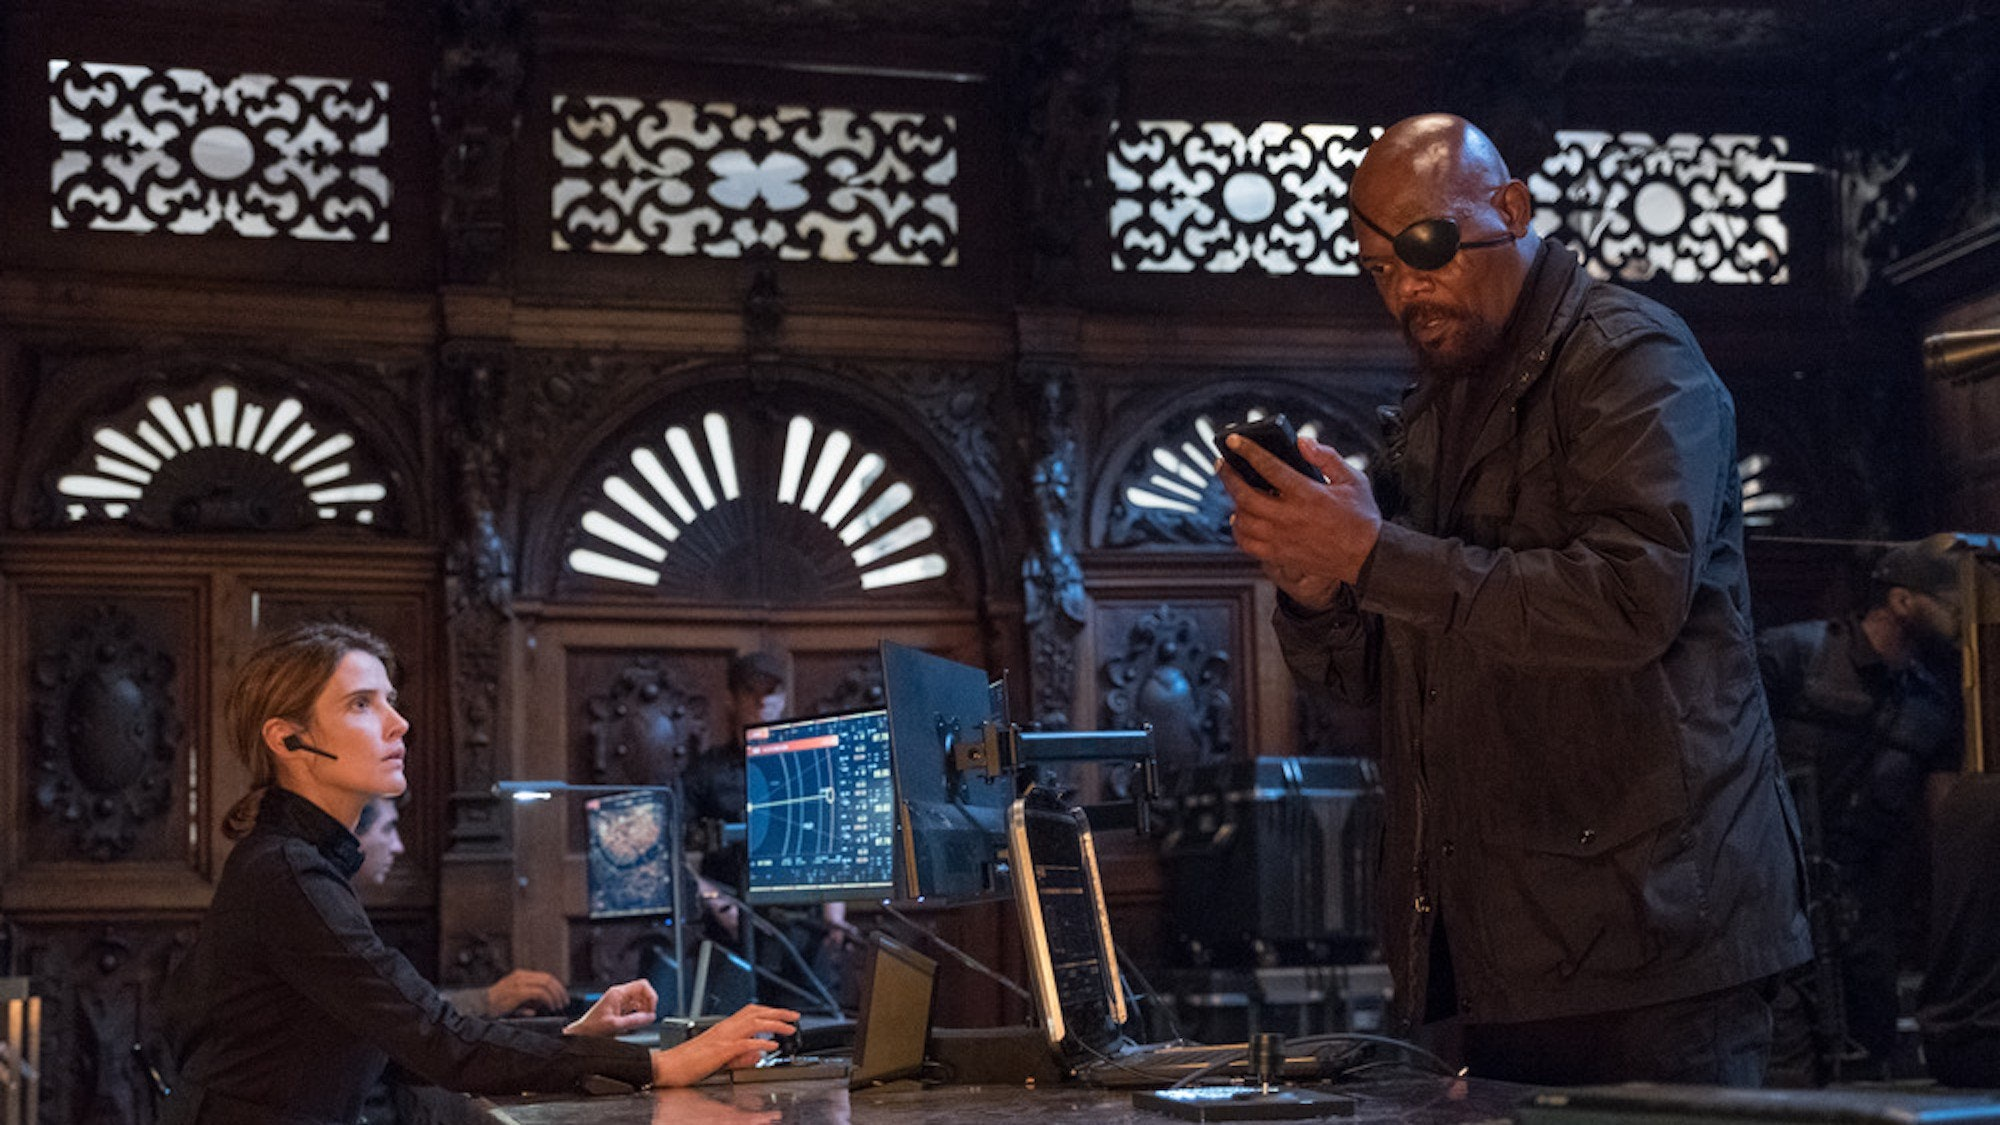 spider-man far from home maria hill and nick fury